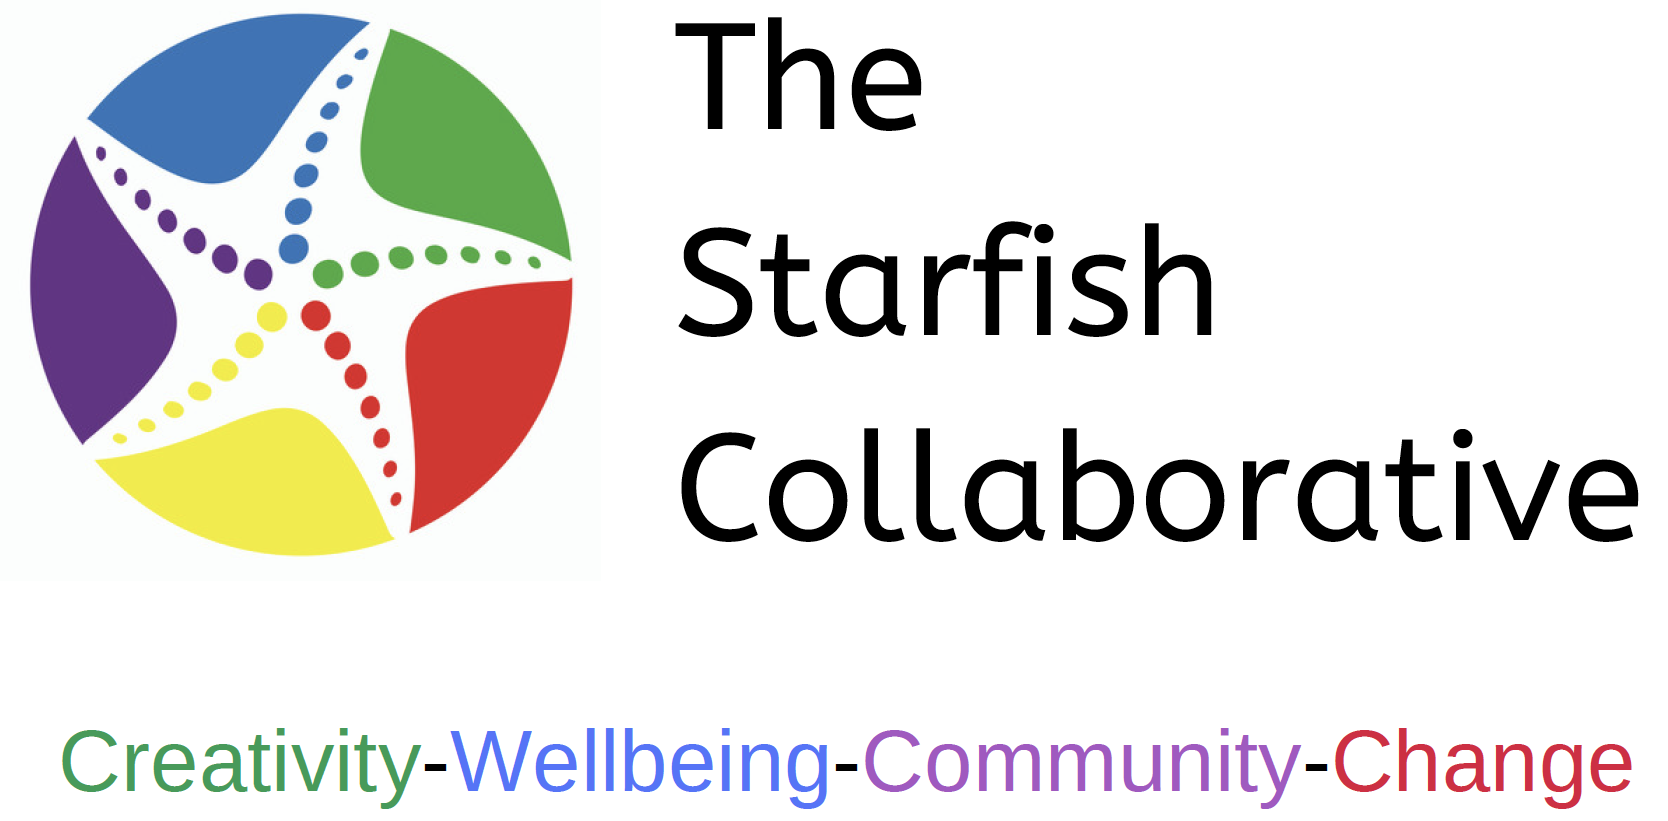 The Starfish Collaborative